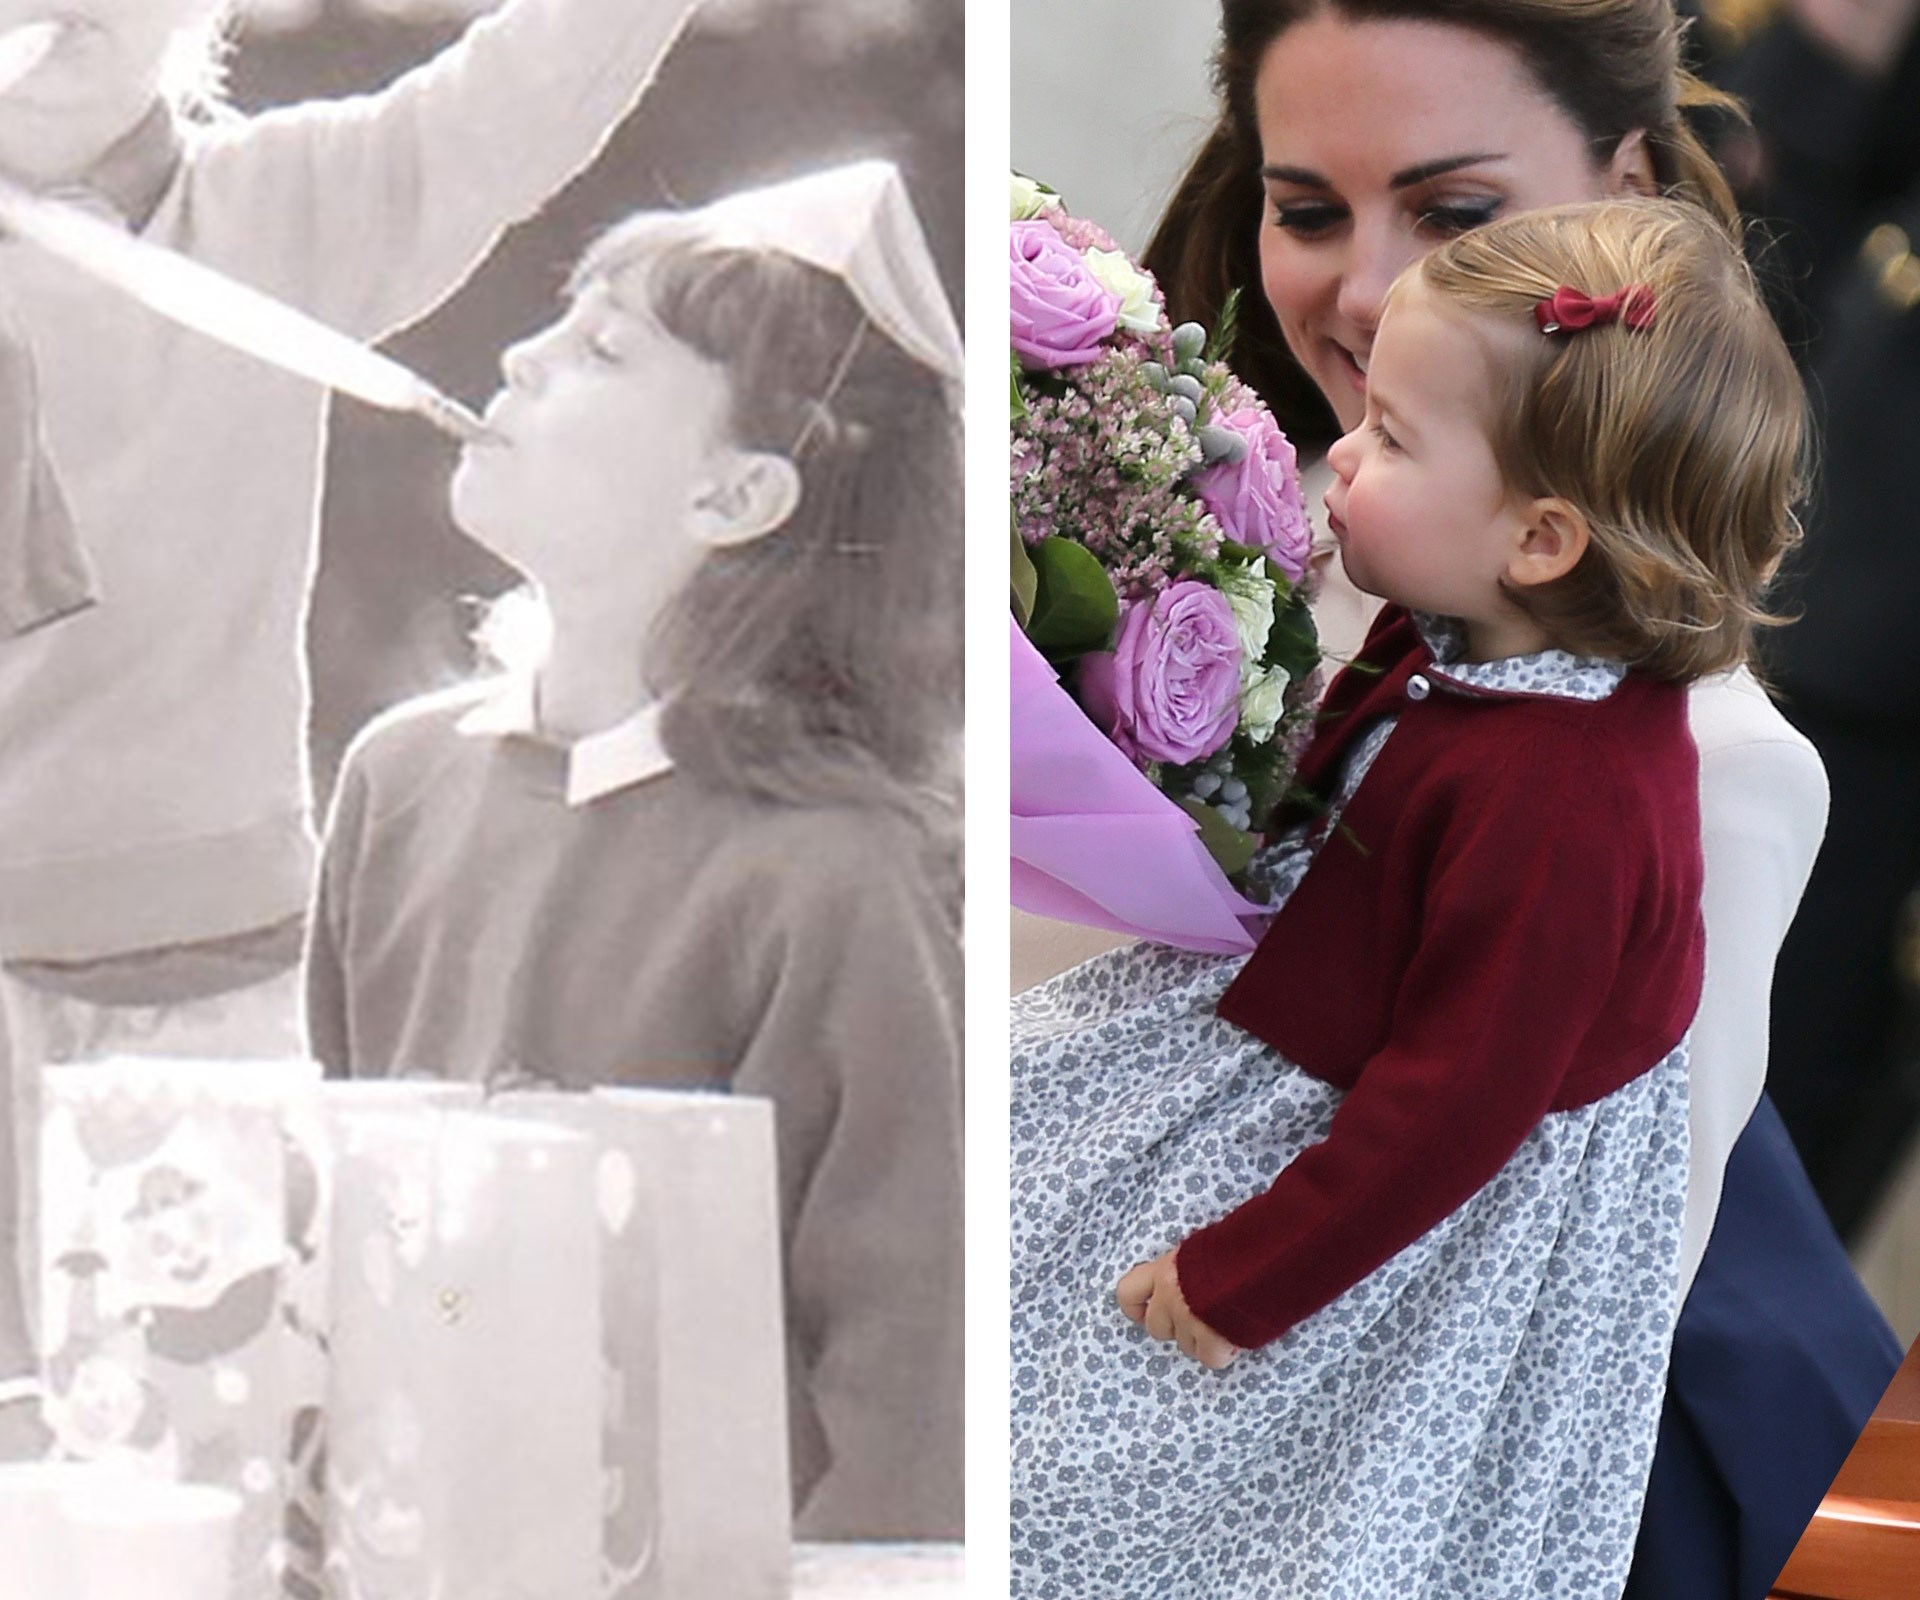 """Sporting a front fringe underneath a celebratory hat, Catherine cheerfully blows into a party streamer, appearing the spitting image of her now-daughter, Princess Charlotte. *[(Via: Party Pices)](http://www.partypieces.co.uk/about-us